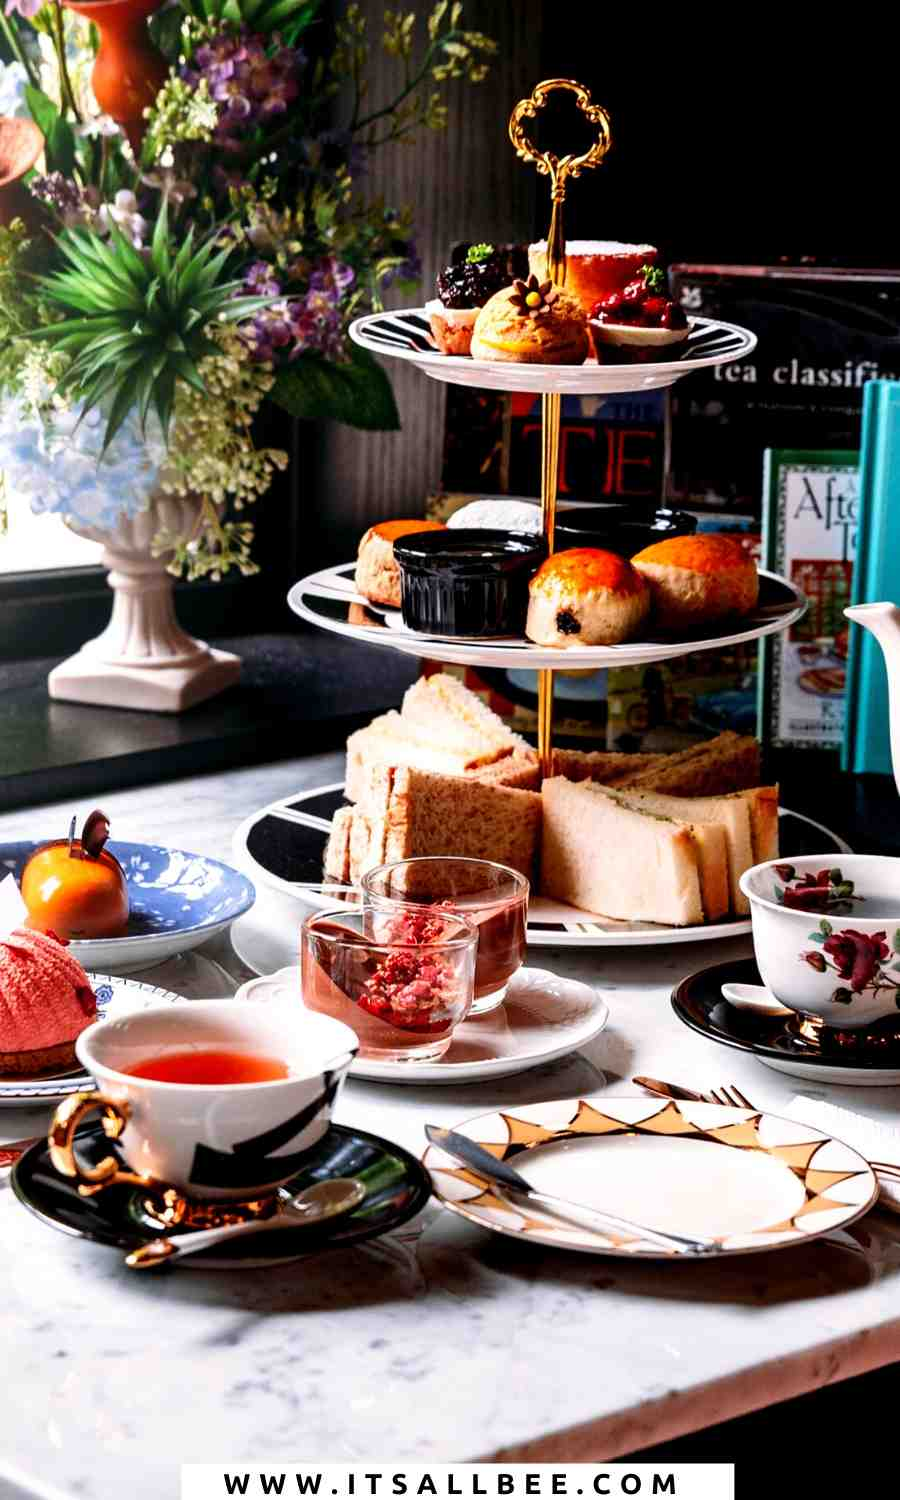 cool places for afternoon tea in london